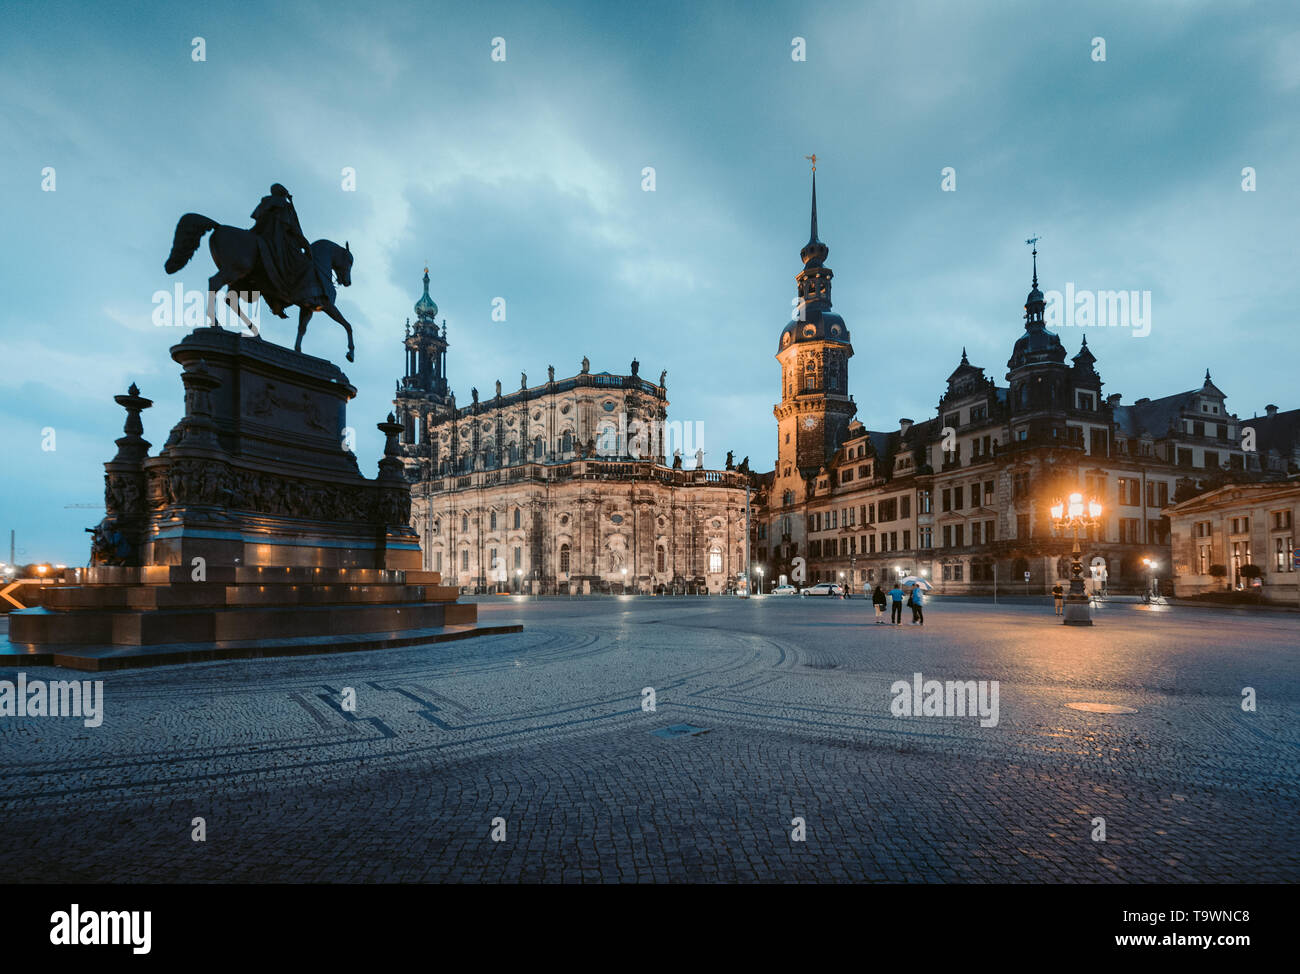 Classic twilight view of historic Dresden city center illuminated in beautiful evening twilight with dramatic sky during blue hour at dusk, Saxony, Ge - Stock Image